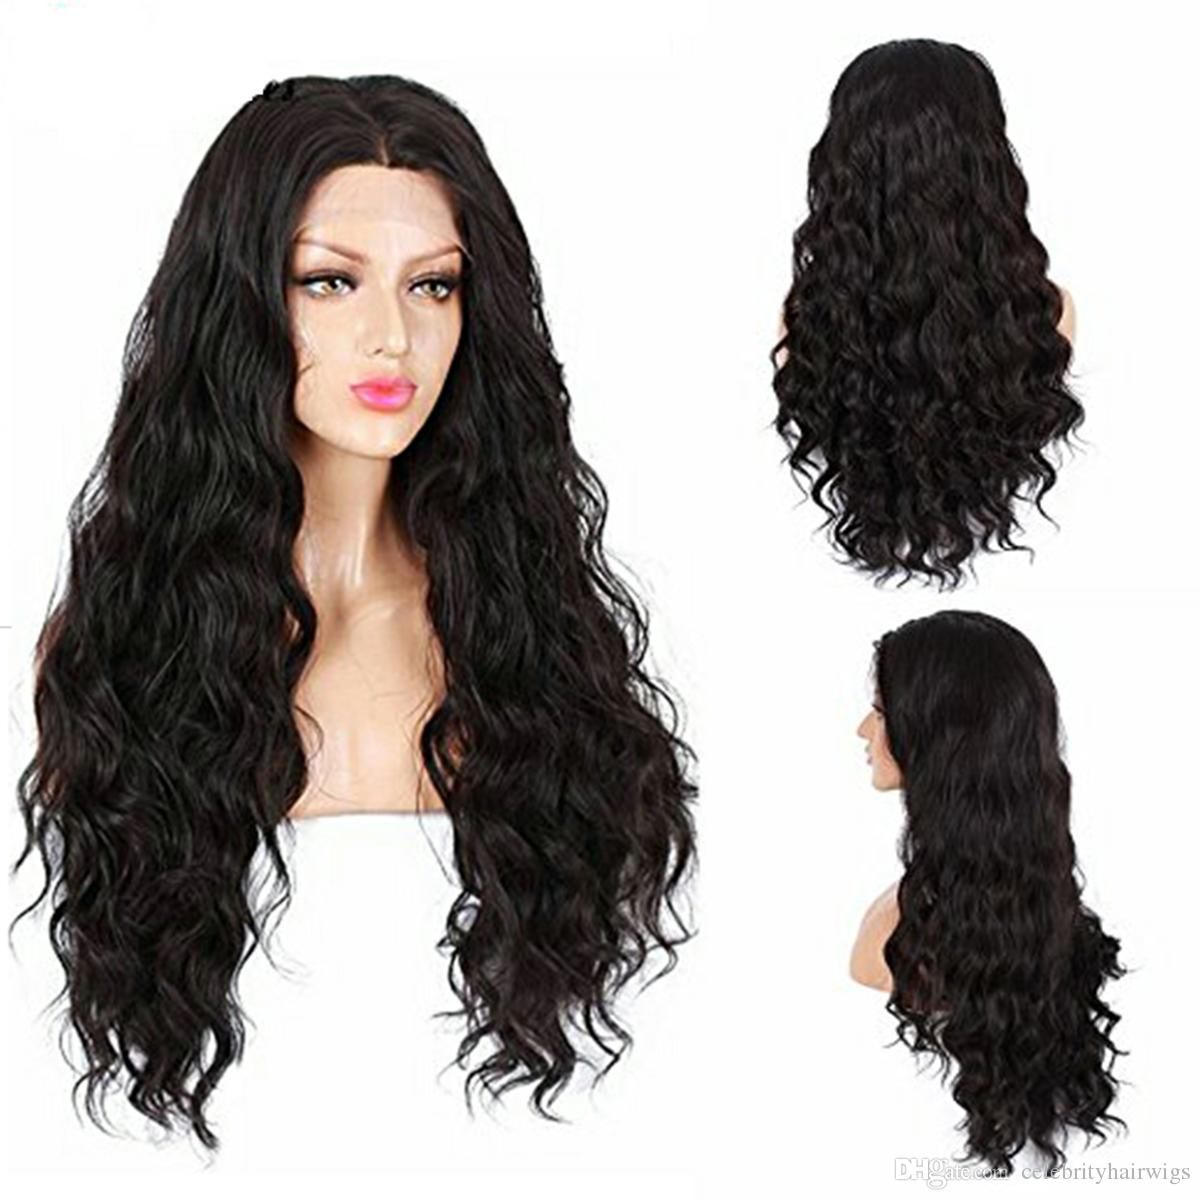 MHAZEL Loose Culy Synthetic Hair Lace Front Wig Middle Part 26inch Long Hair Wig Stock Black/Brown/Blonde